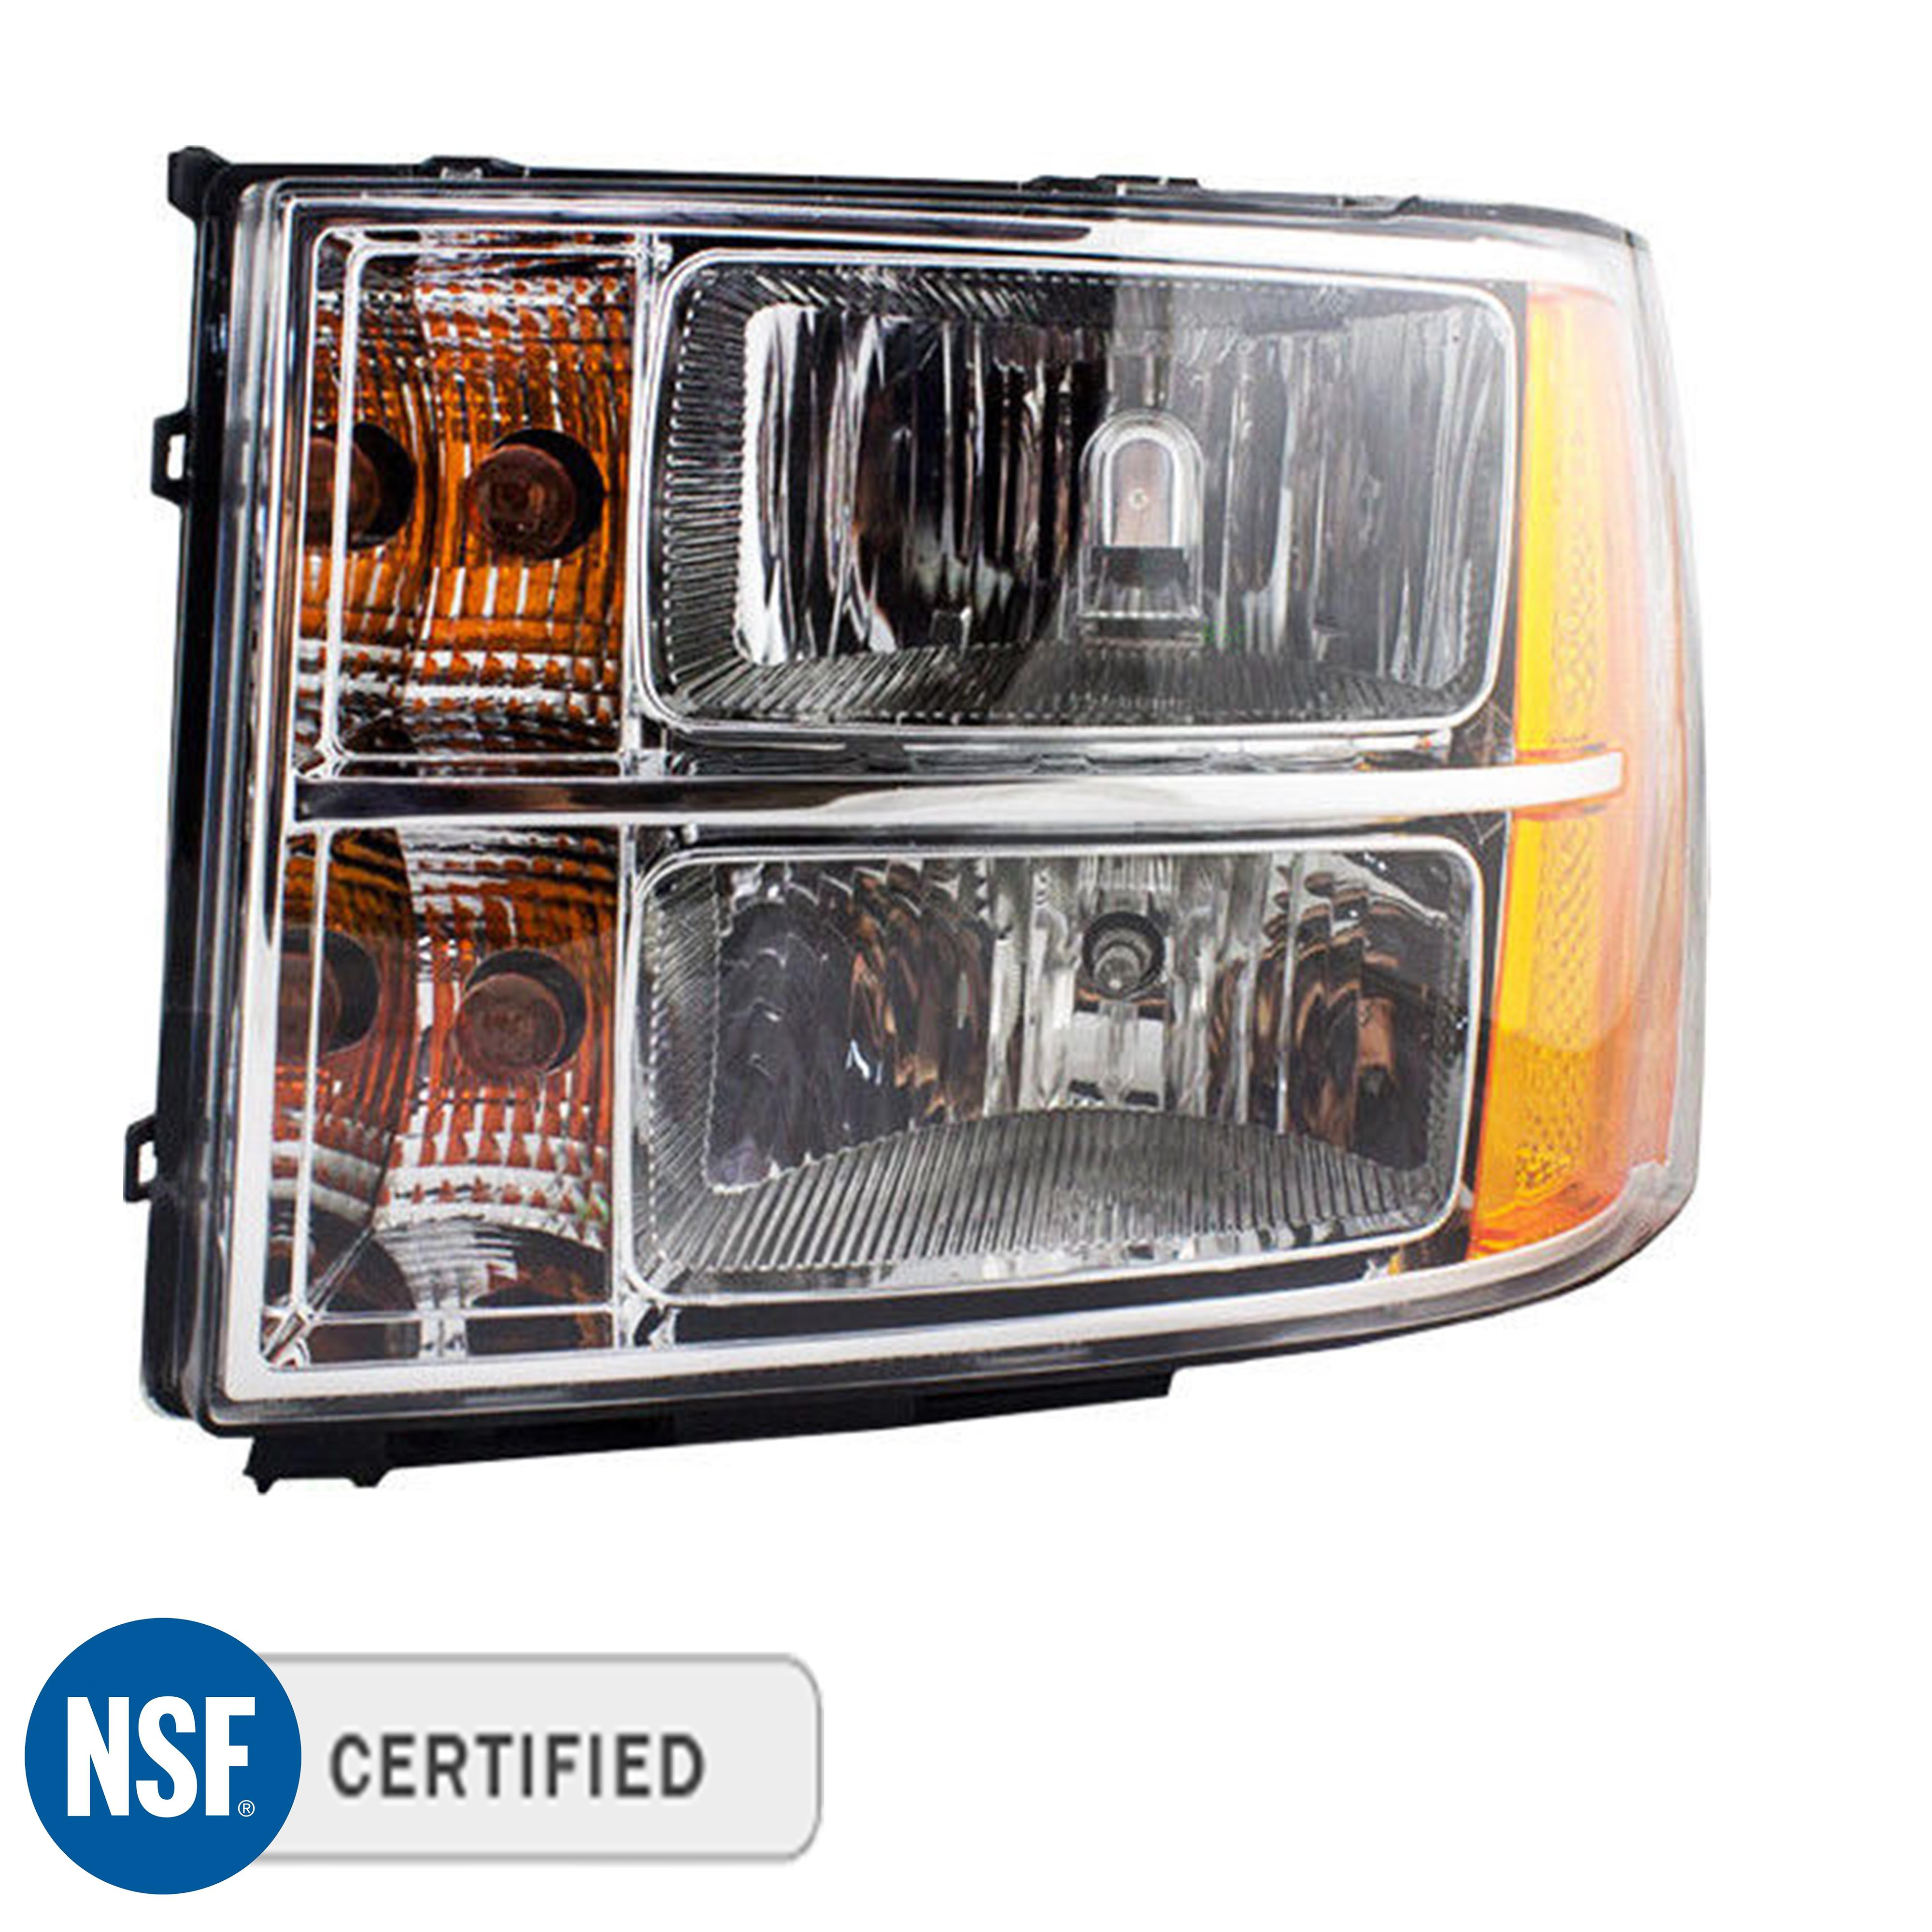 Gm2502283 Headlight Headlamp Passenger Side For Gmc Fits Sierra 1500